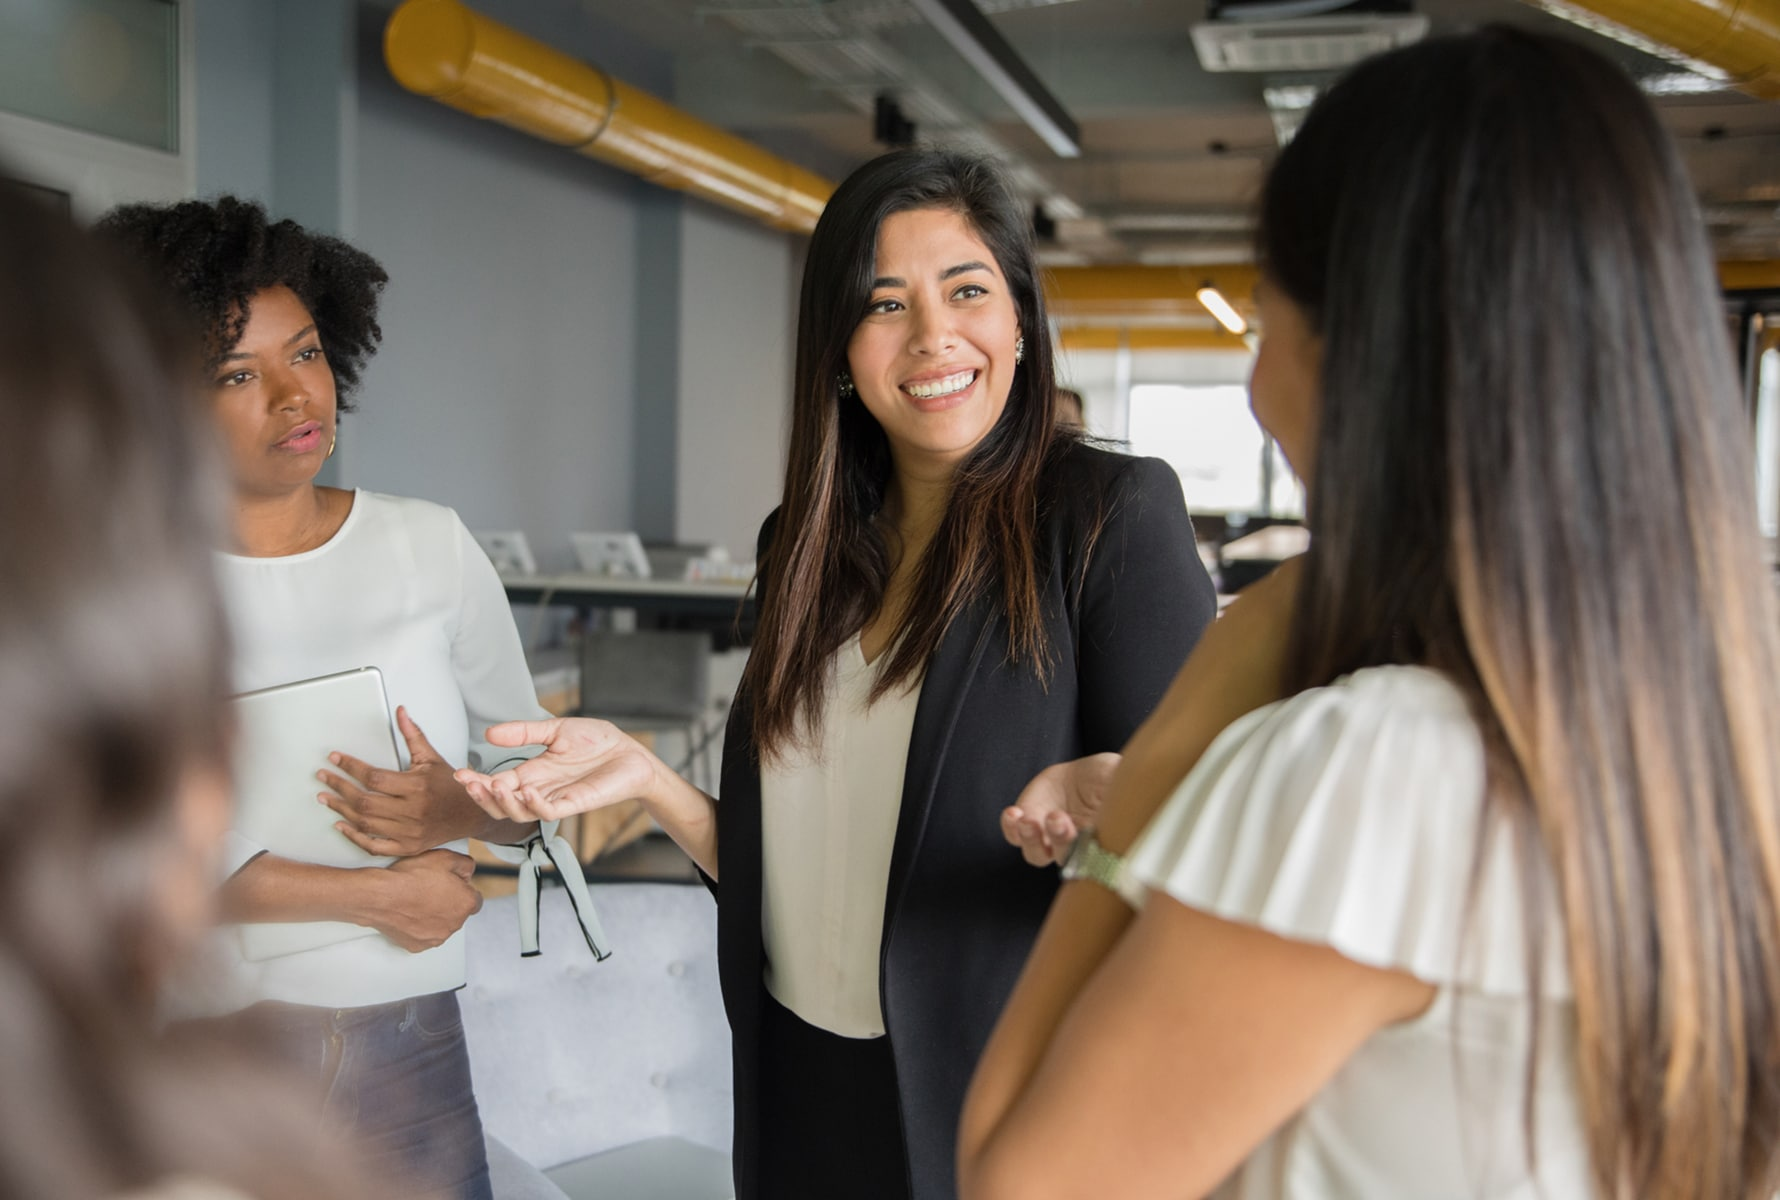 Women discussing skills before a job interview